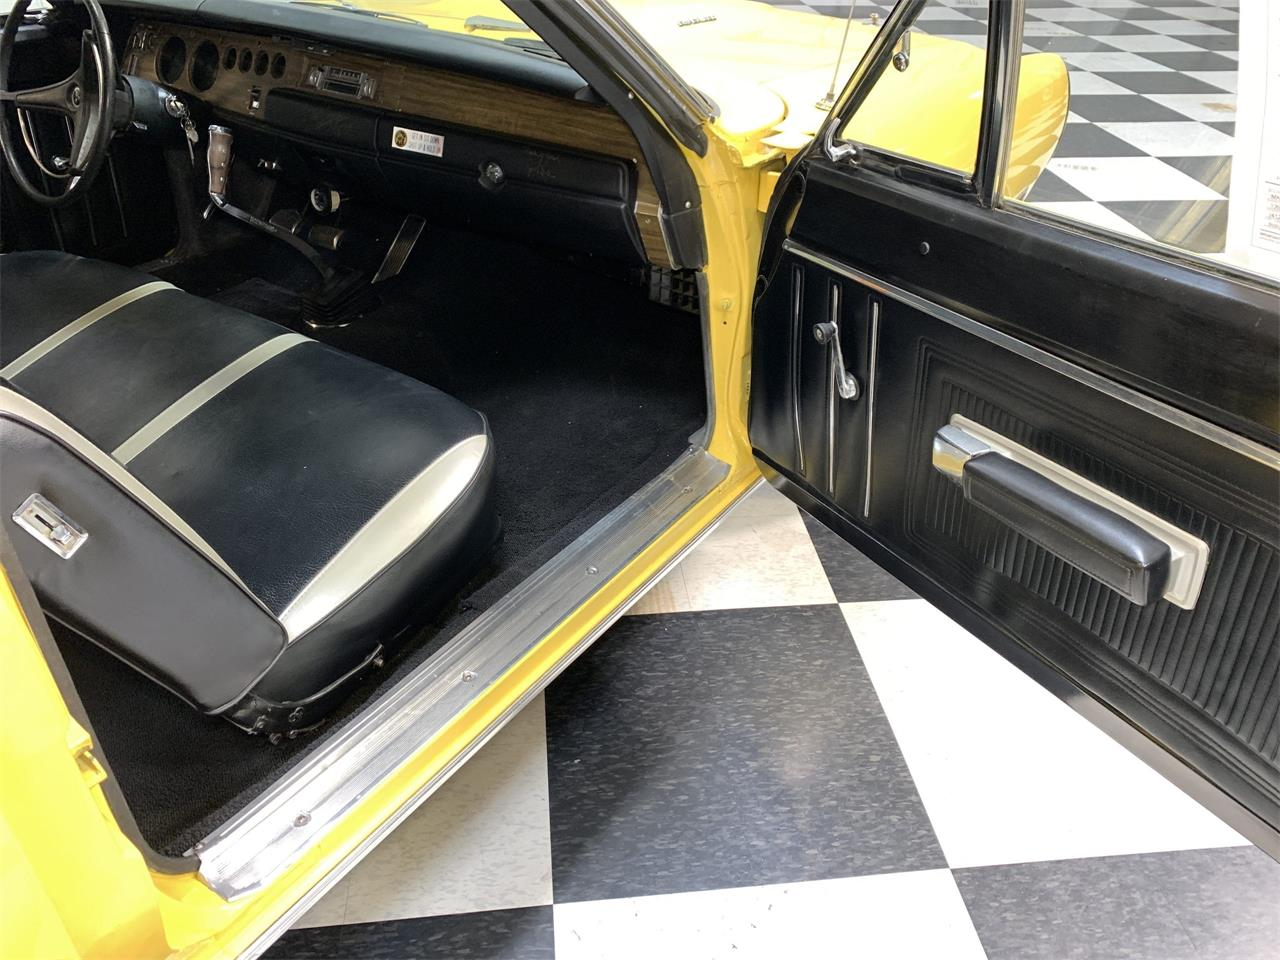 1970 Dodge Coronet for sale in Pittsburgh, PA – photo 47